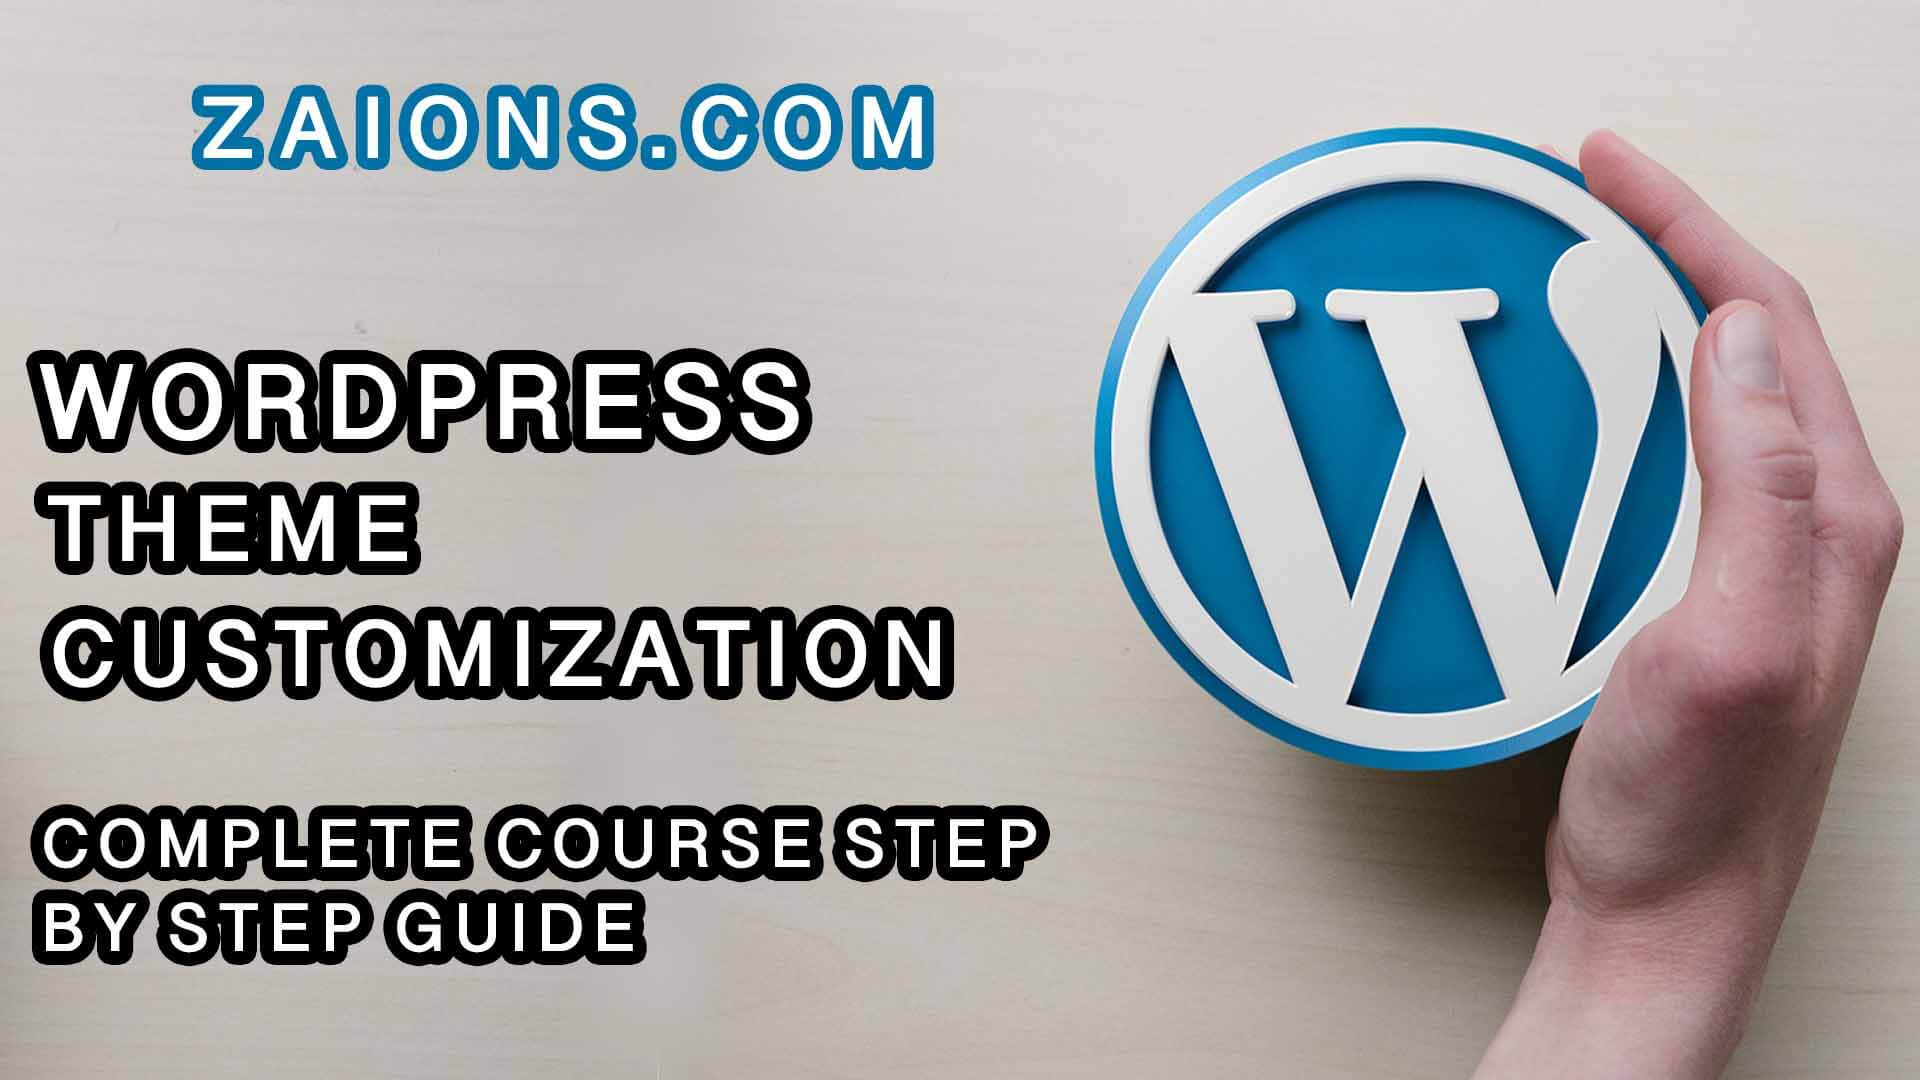 Wordpress Theme Customization Course Step by Step Guide